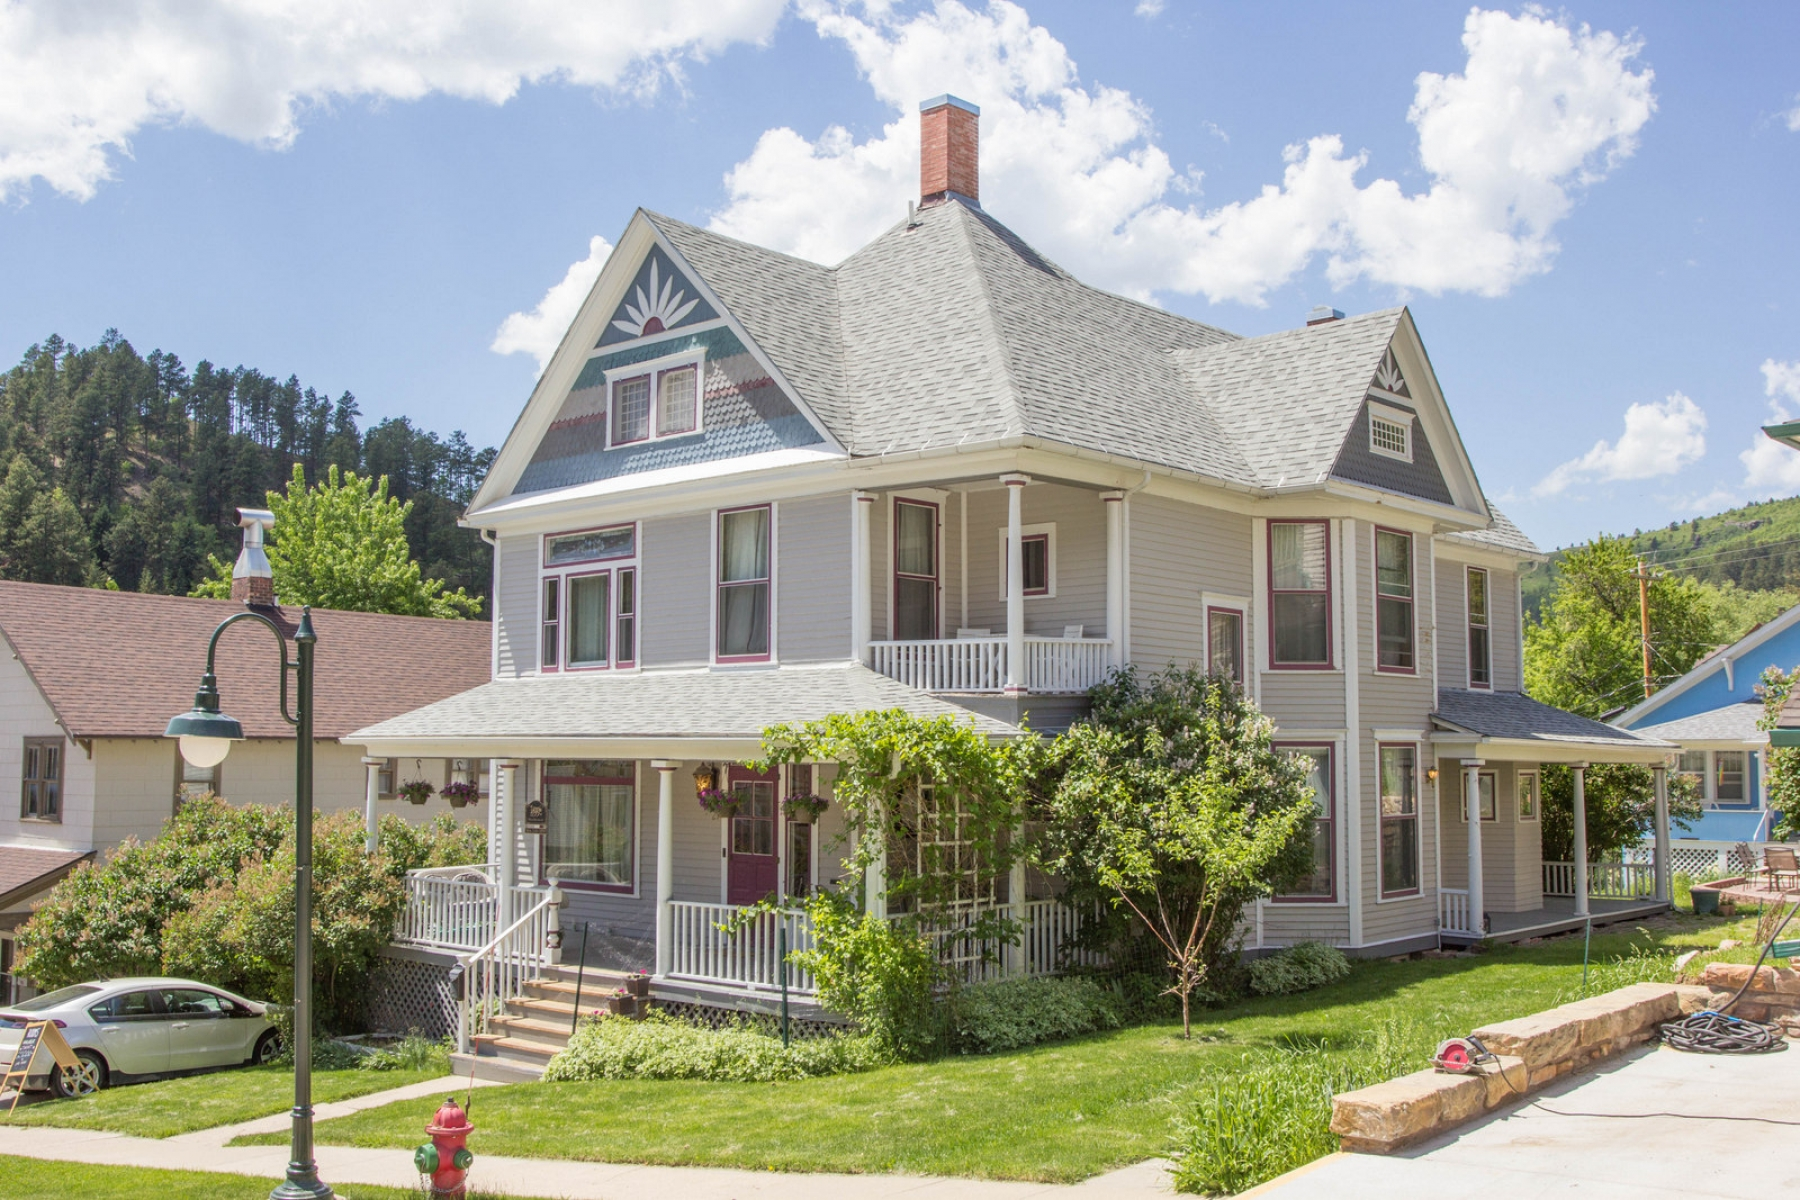 The 1899 Inn - Boutique Deadwood Bed & Breakfast